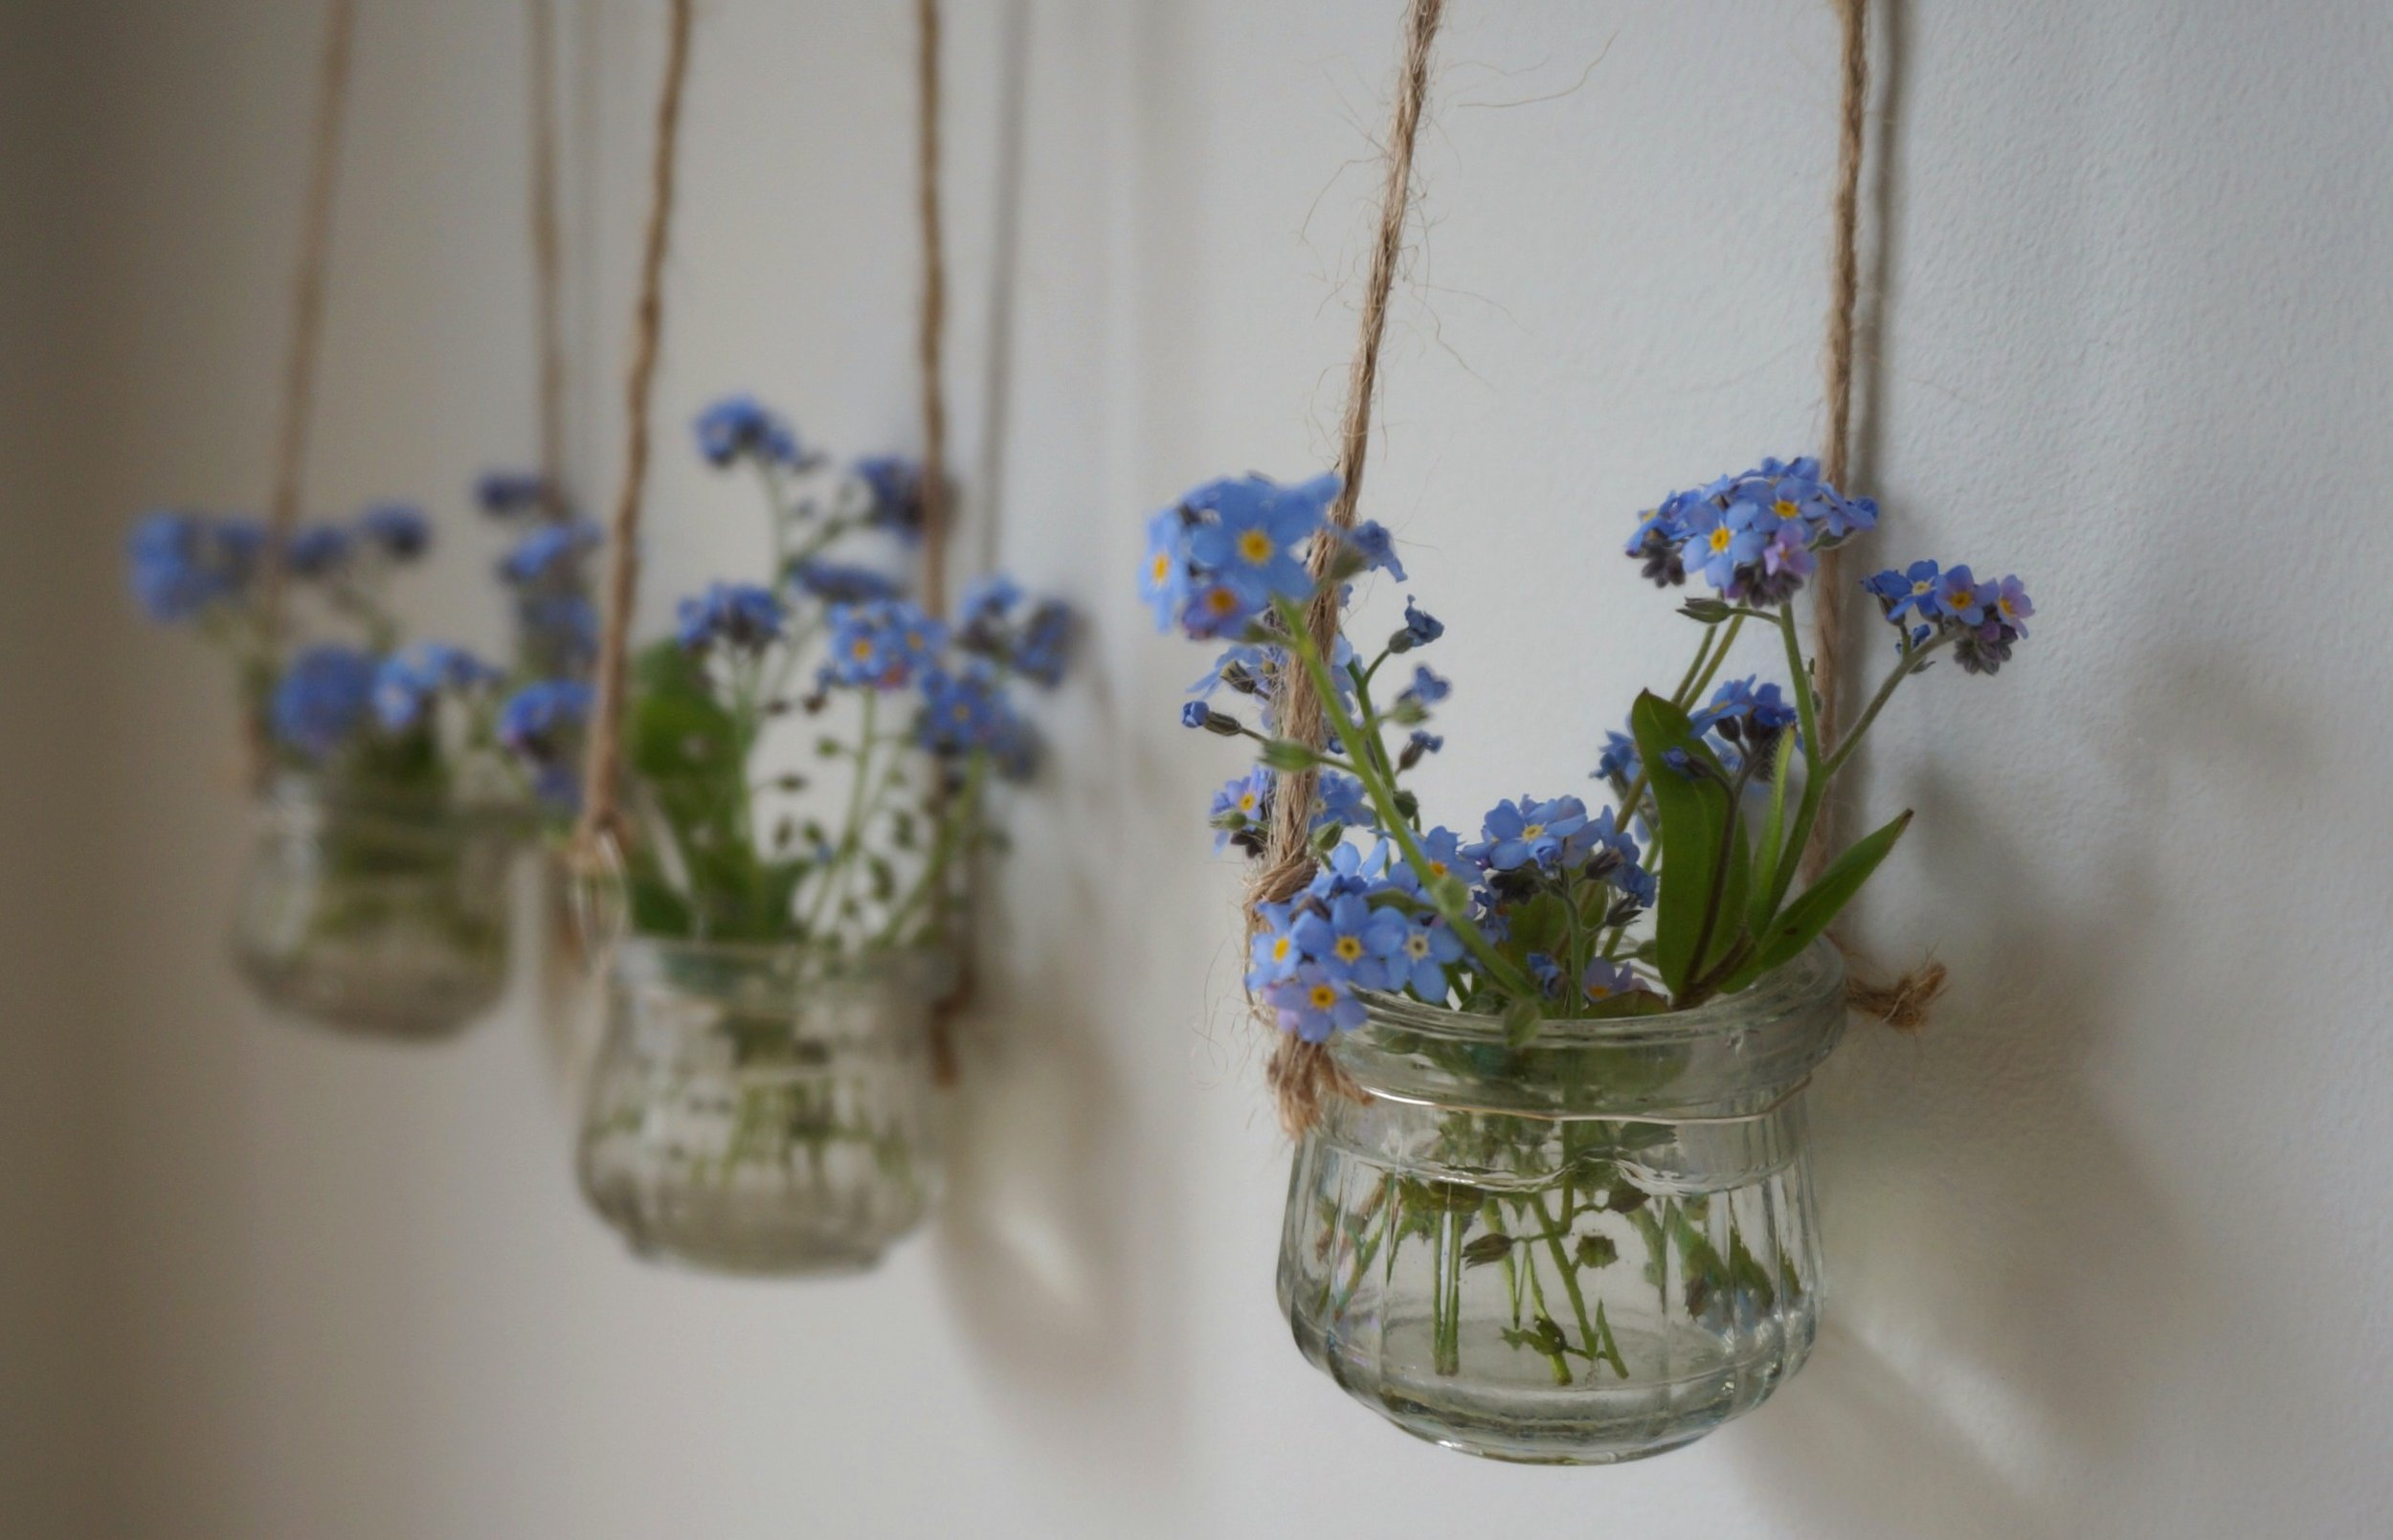 Forget-me-nots in vases